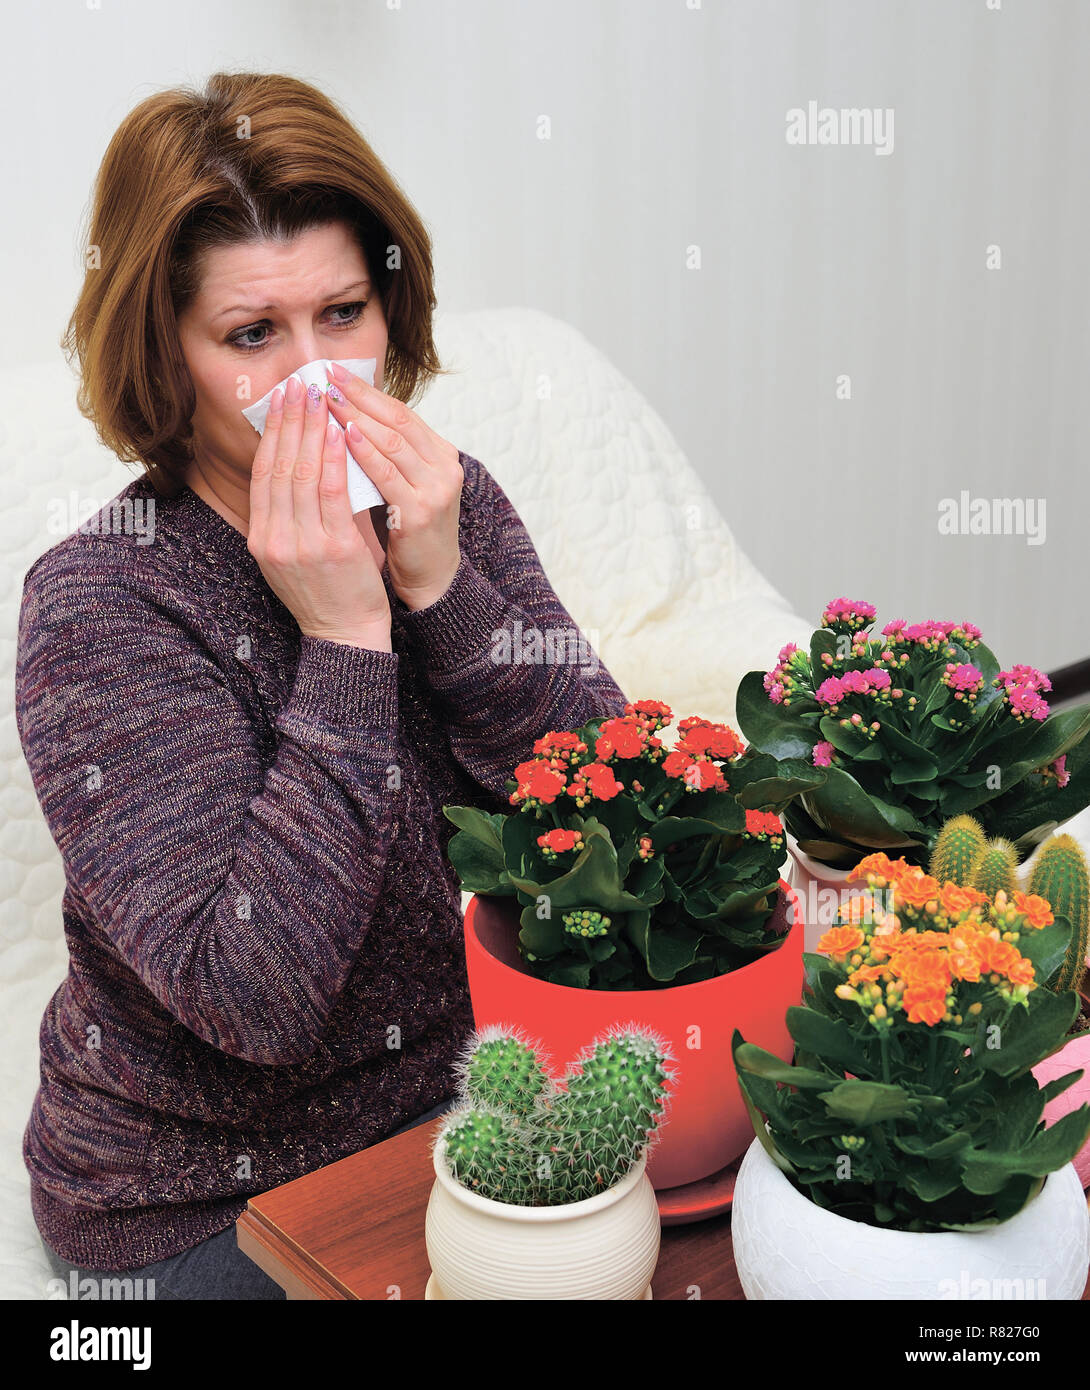 Woman with allergic rhinitis from indoor plants - Stock Image